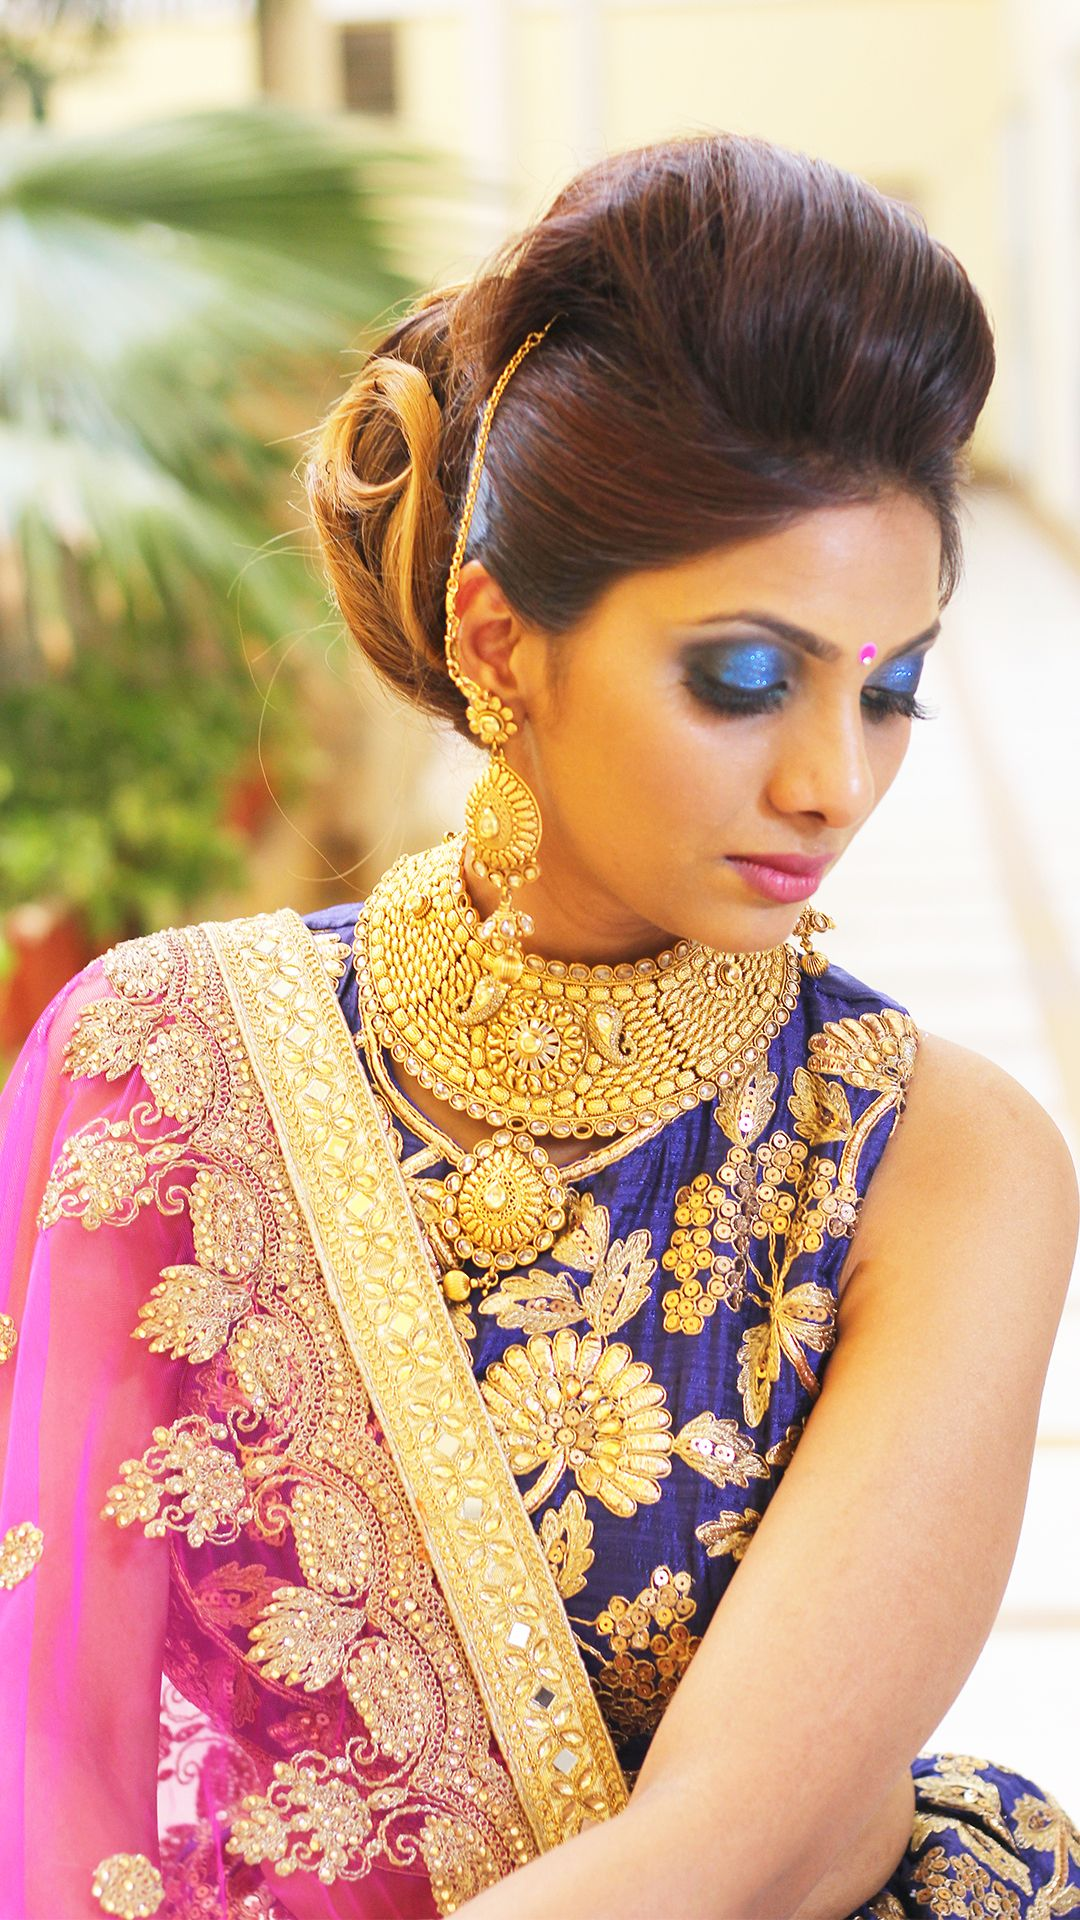 Best makeup products image by Nupur Gupta on BRIDAL SERIES